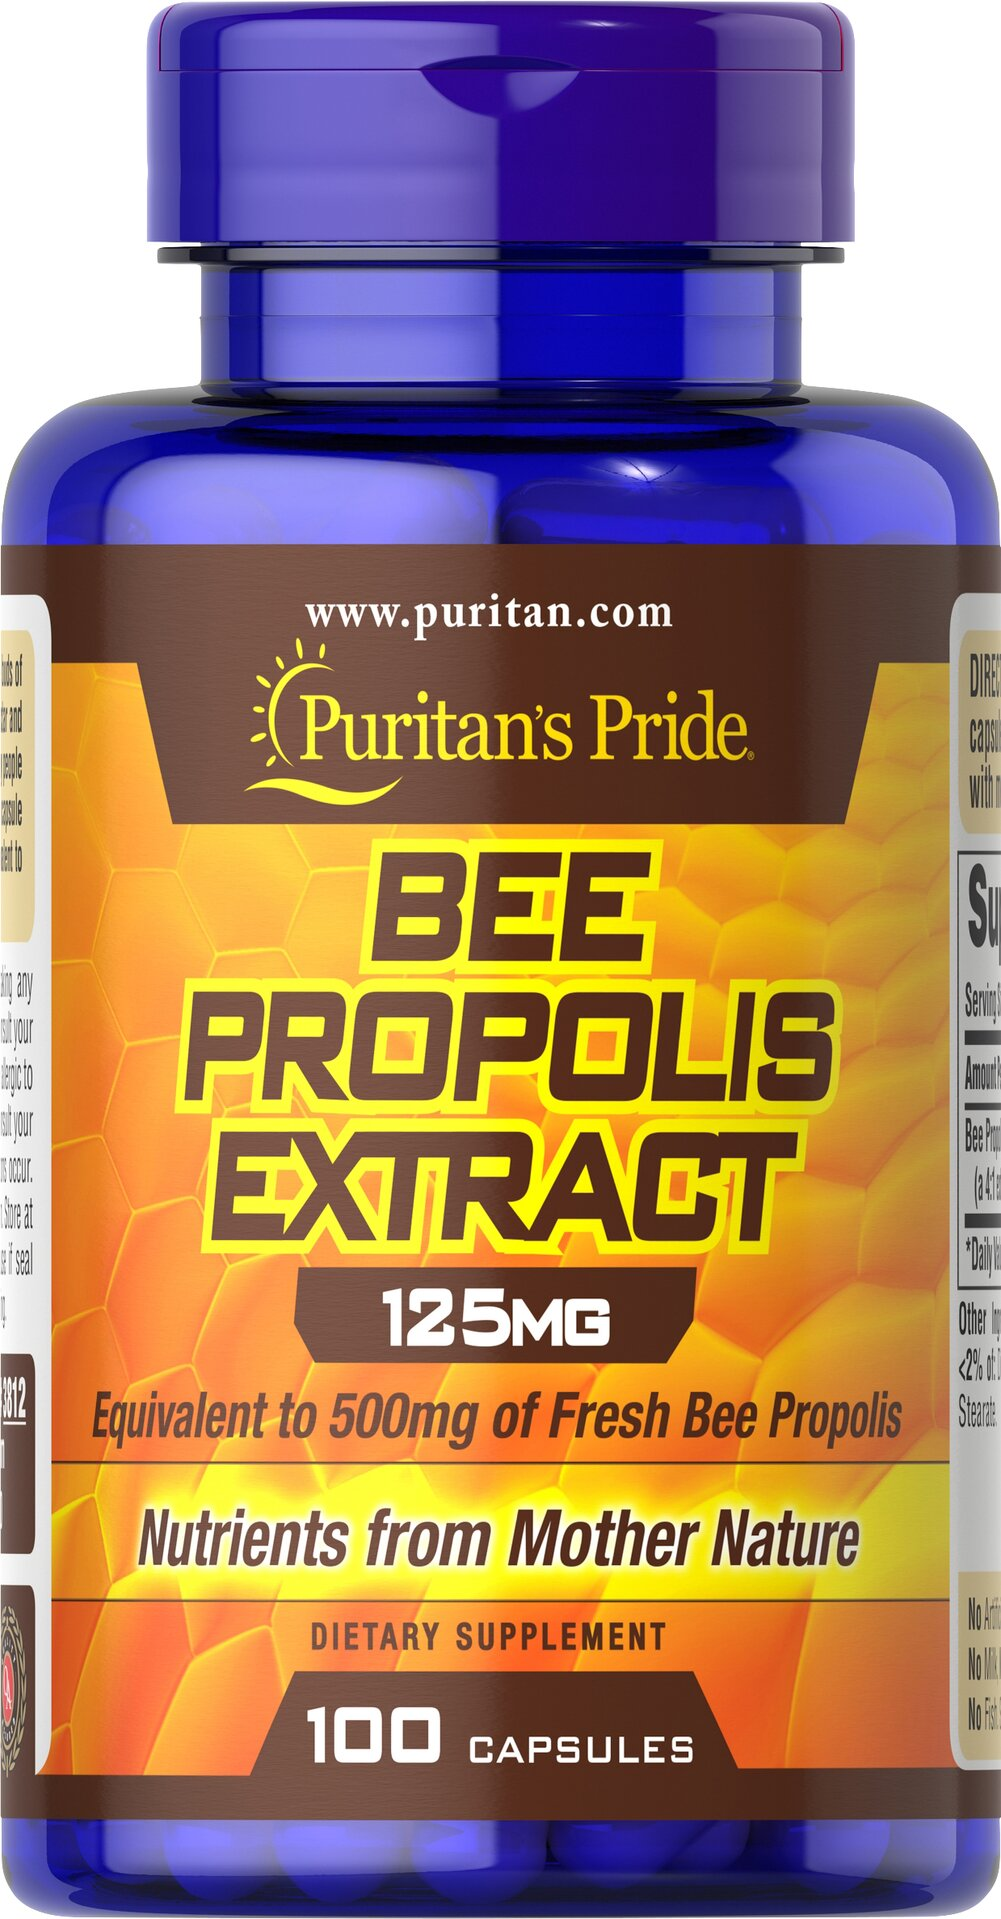 Bee Propolis 500 mg <p>Once again, the amazing Bee has provided us with a beneficial natural food supplement rich in flavonoids, amino acids, vitamins and minerals.  Puritan's Pride offers you high quality natural Bee Propolis at incredible savings.</p> 100 Capsules 500 mg $11.99